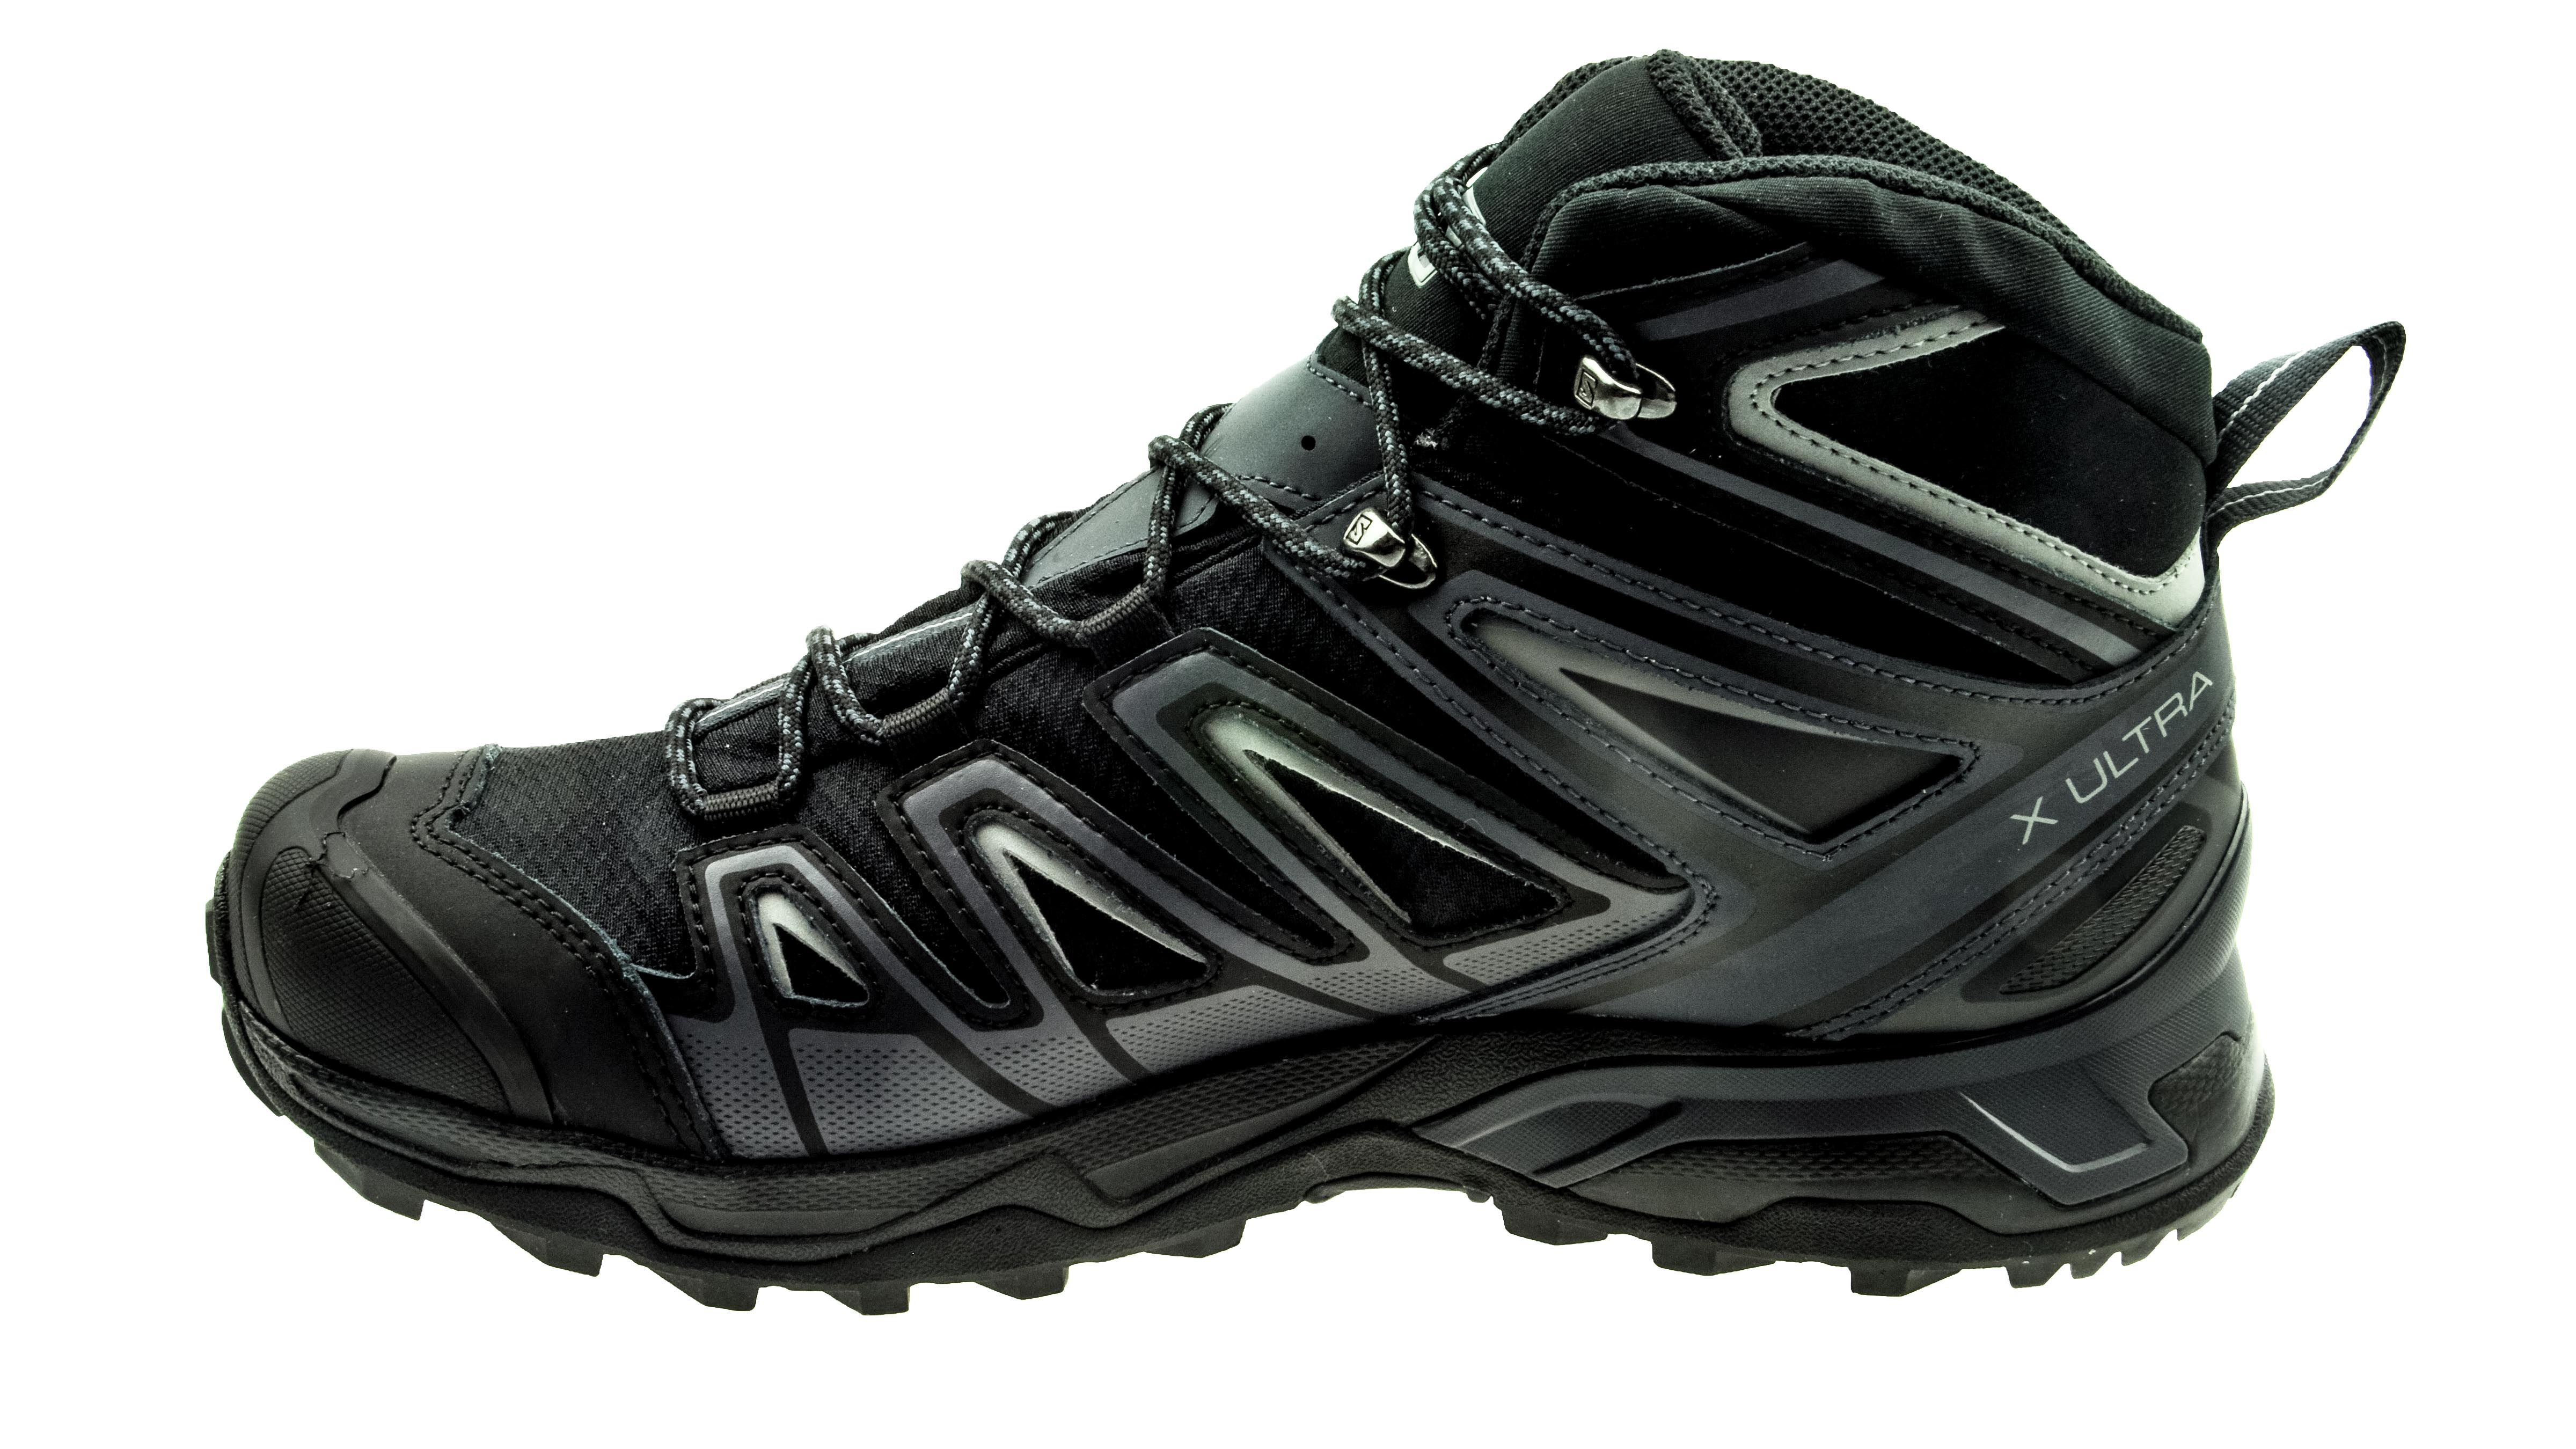 purchase cheap 0b903 ad8e0 Salomon X Ultra Mid 3 GTX black/India Ink/monument